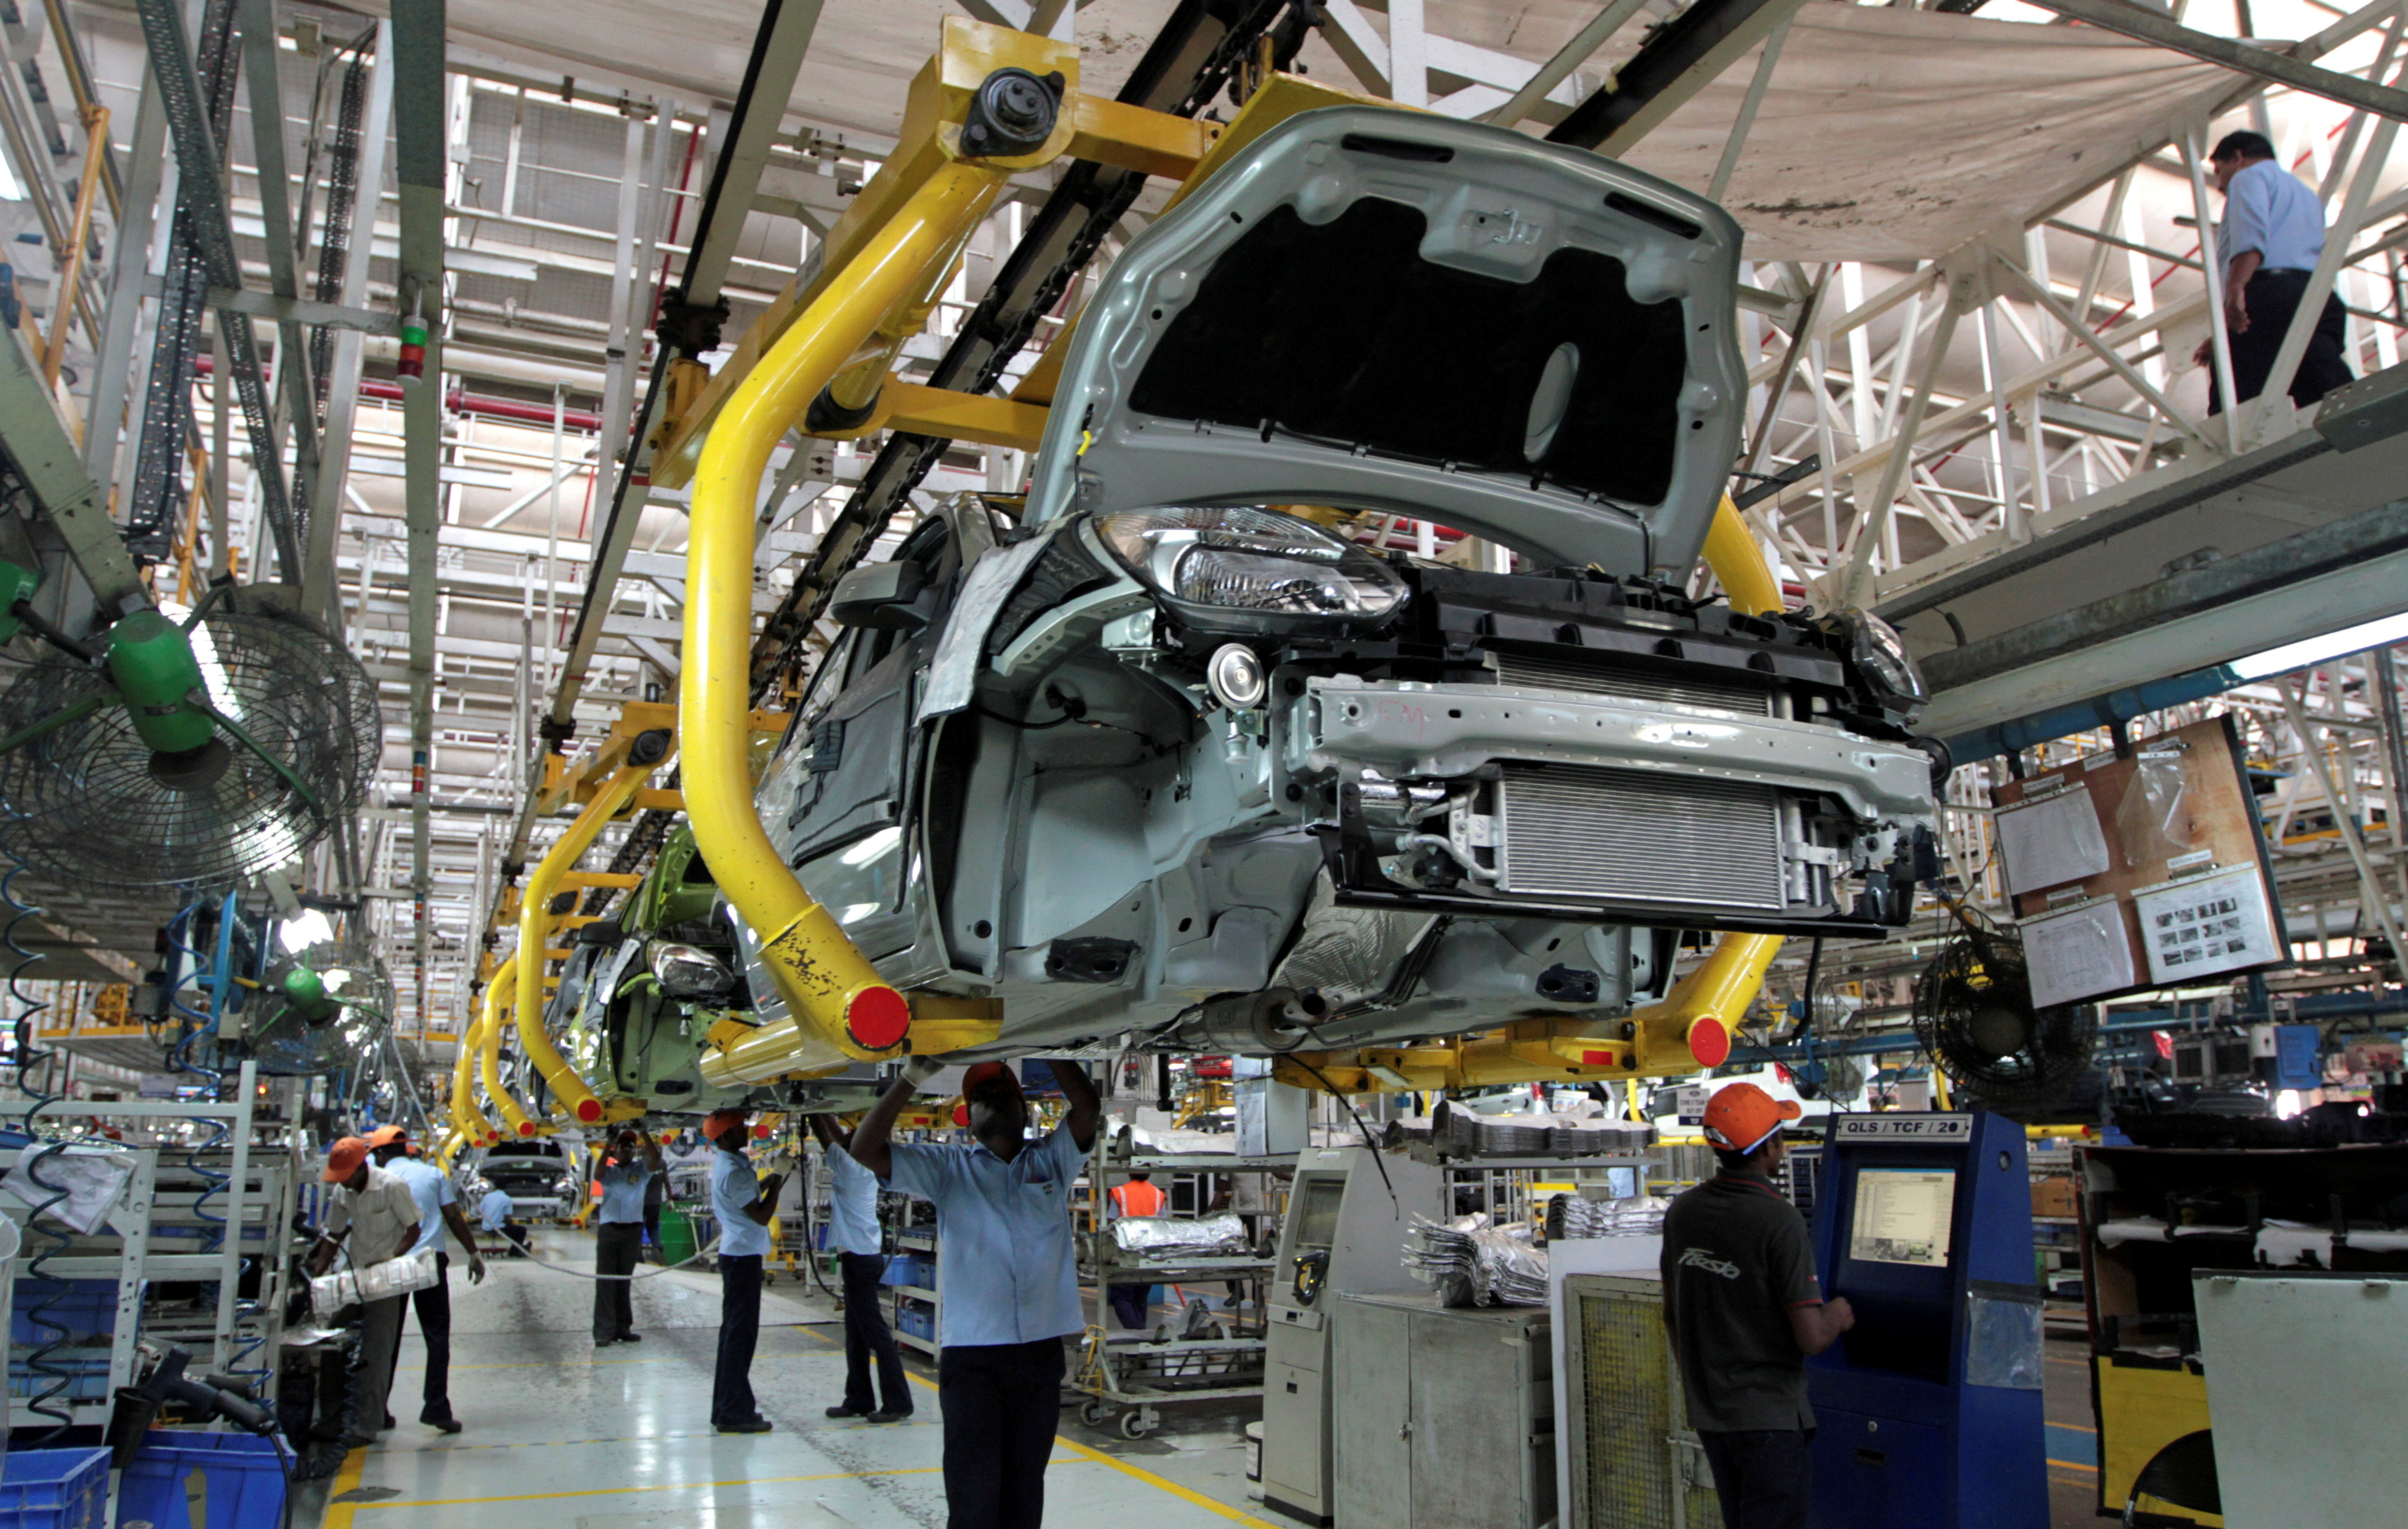 Workers assemble Ford cars at a plant of Ford India in Chengalpattu on the outskirts of Chennai, India March 5, 2012. REUTERS/Babu/File Photo